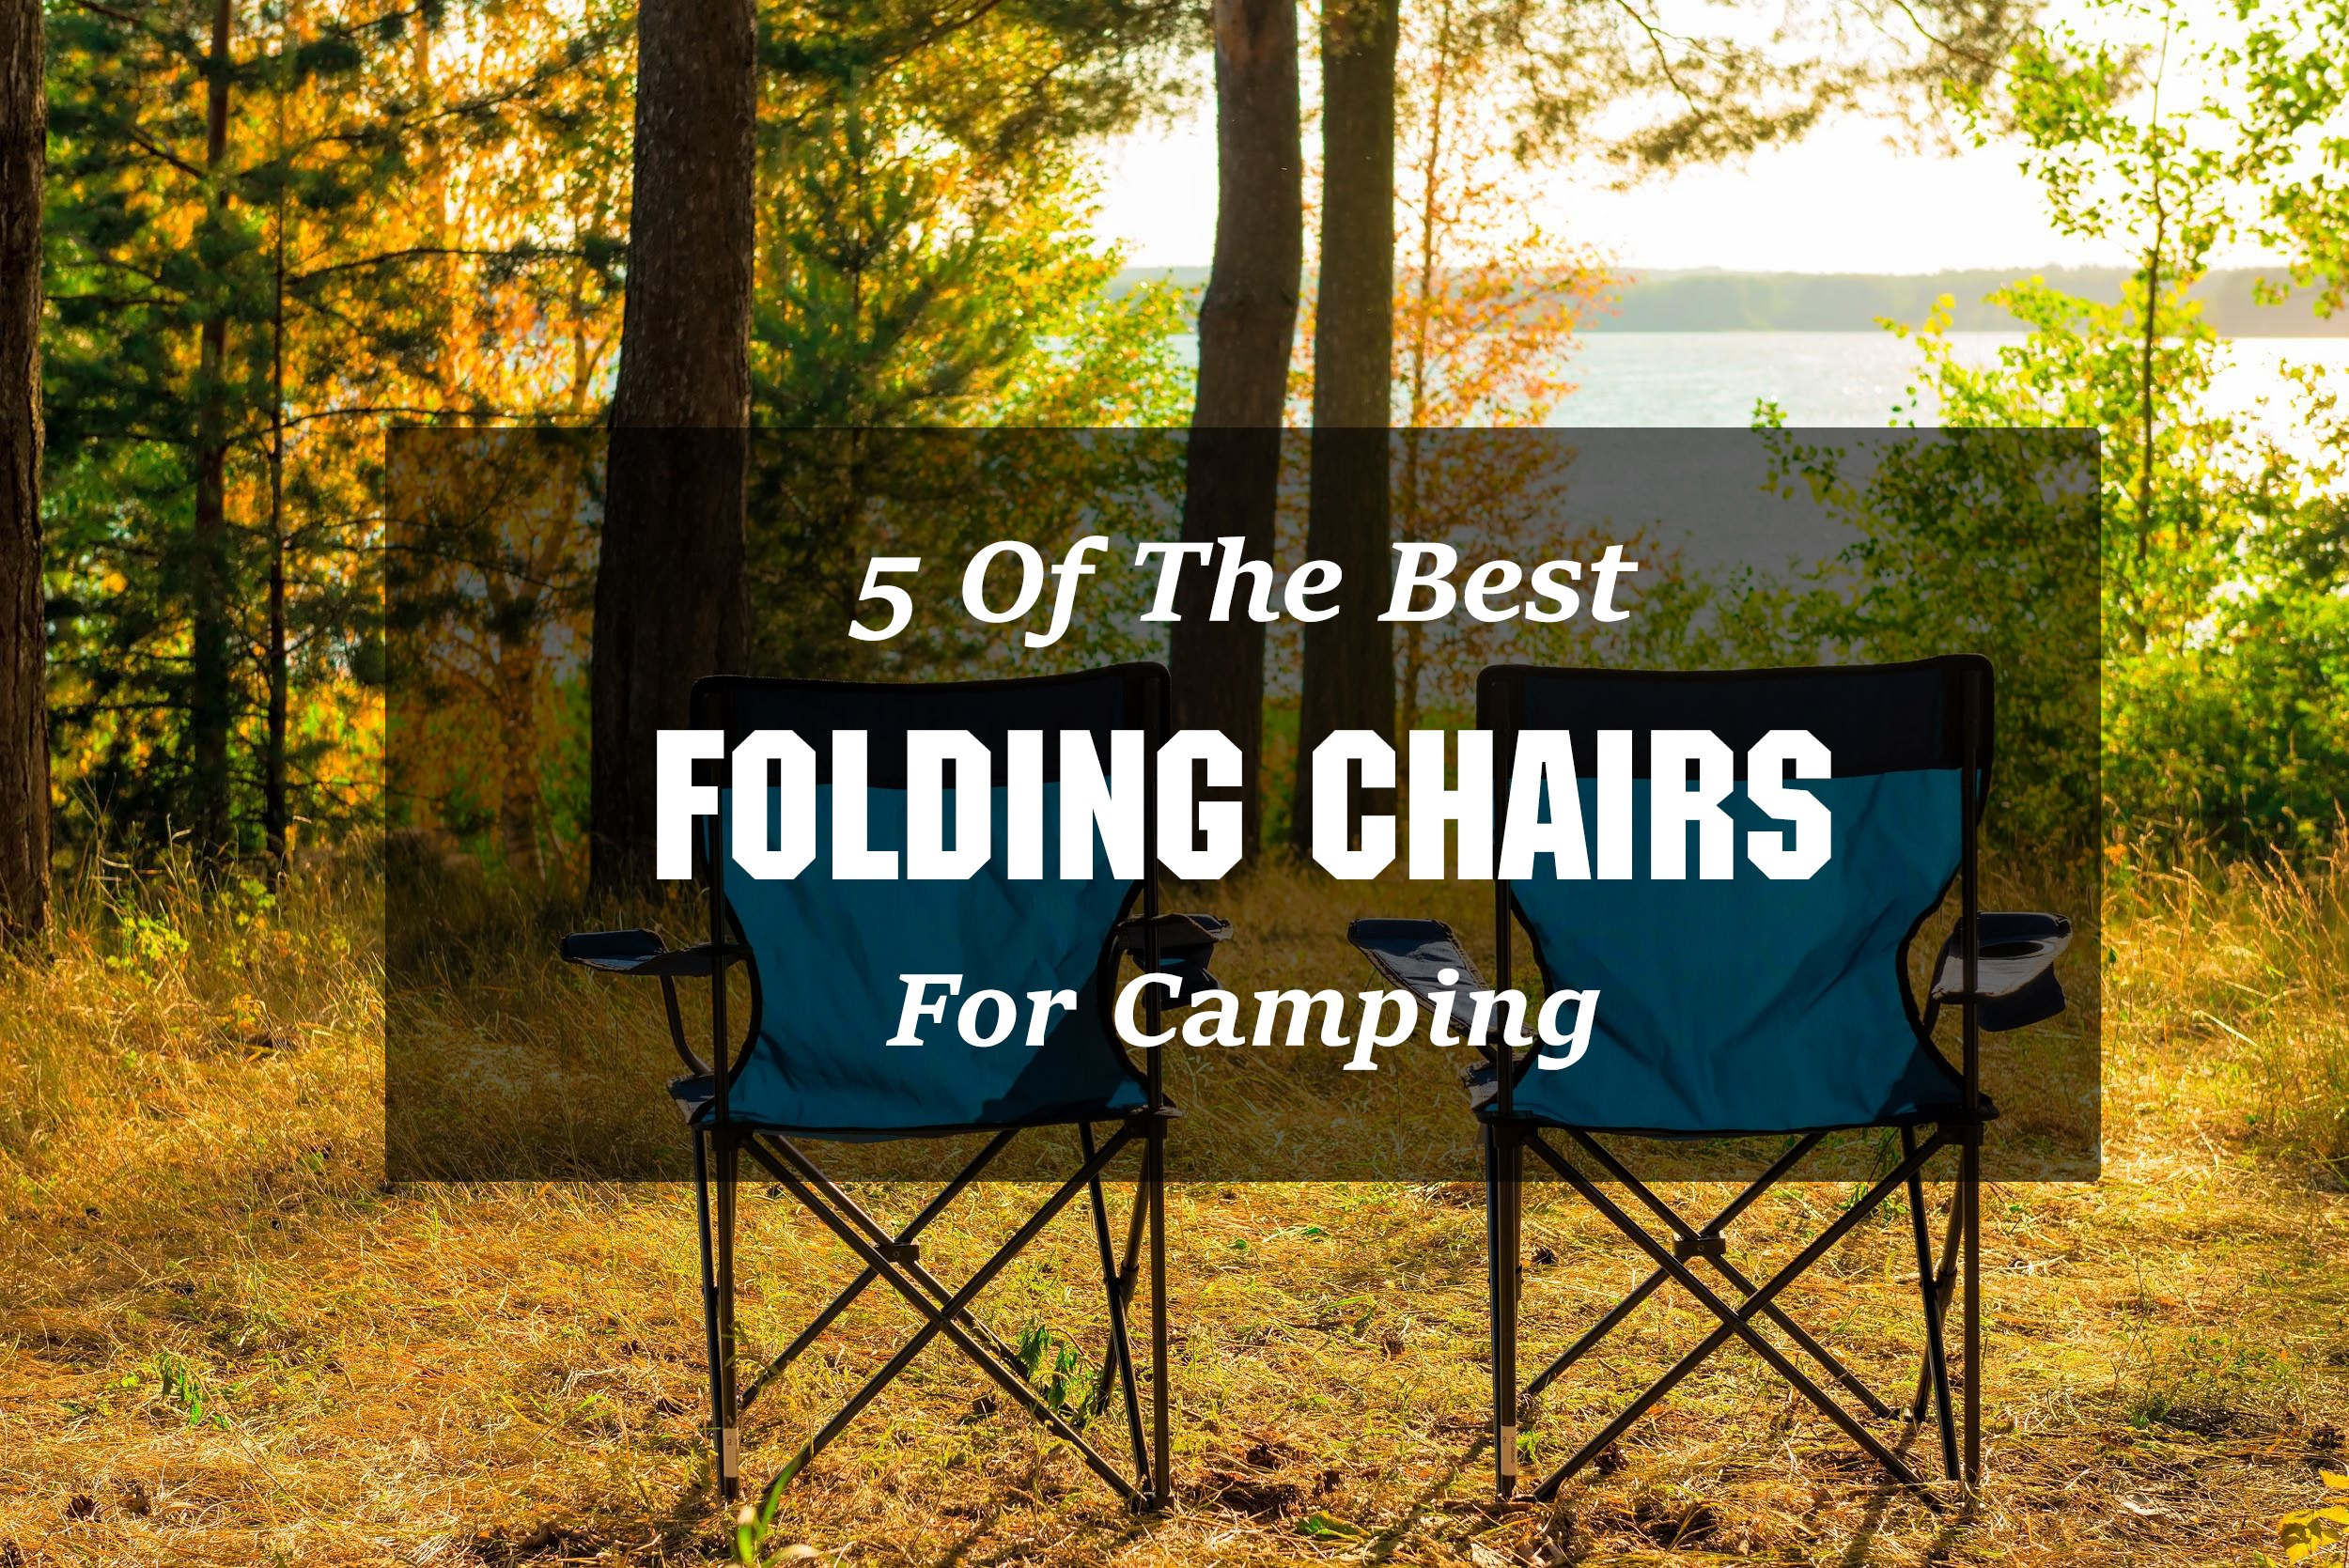 5 Of The Best Folding Chairs For Camping!